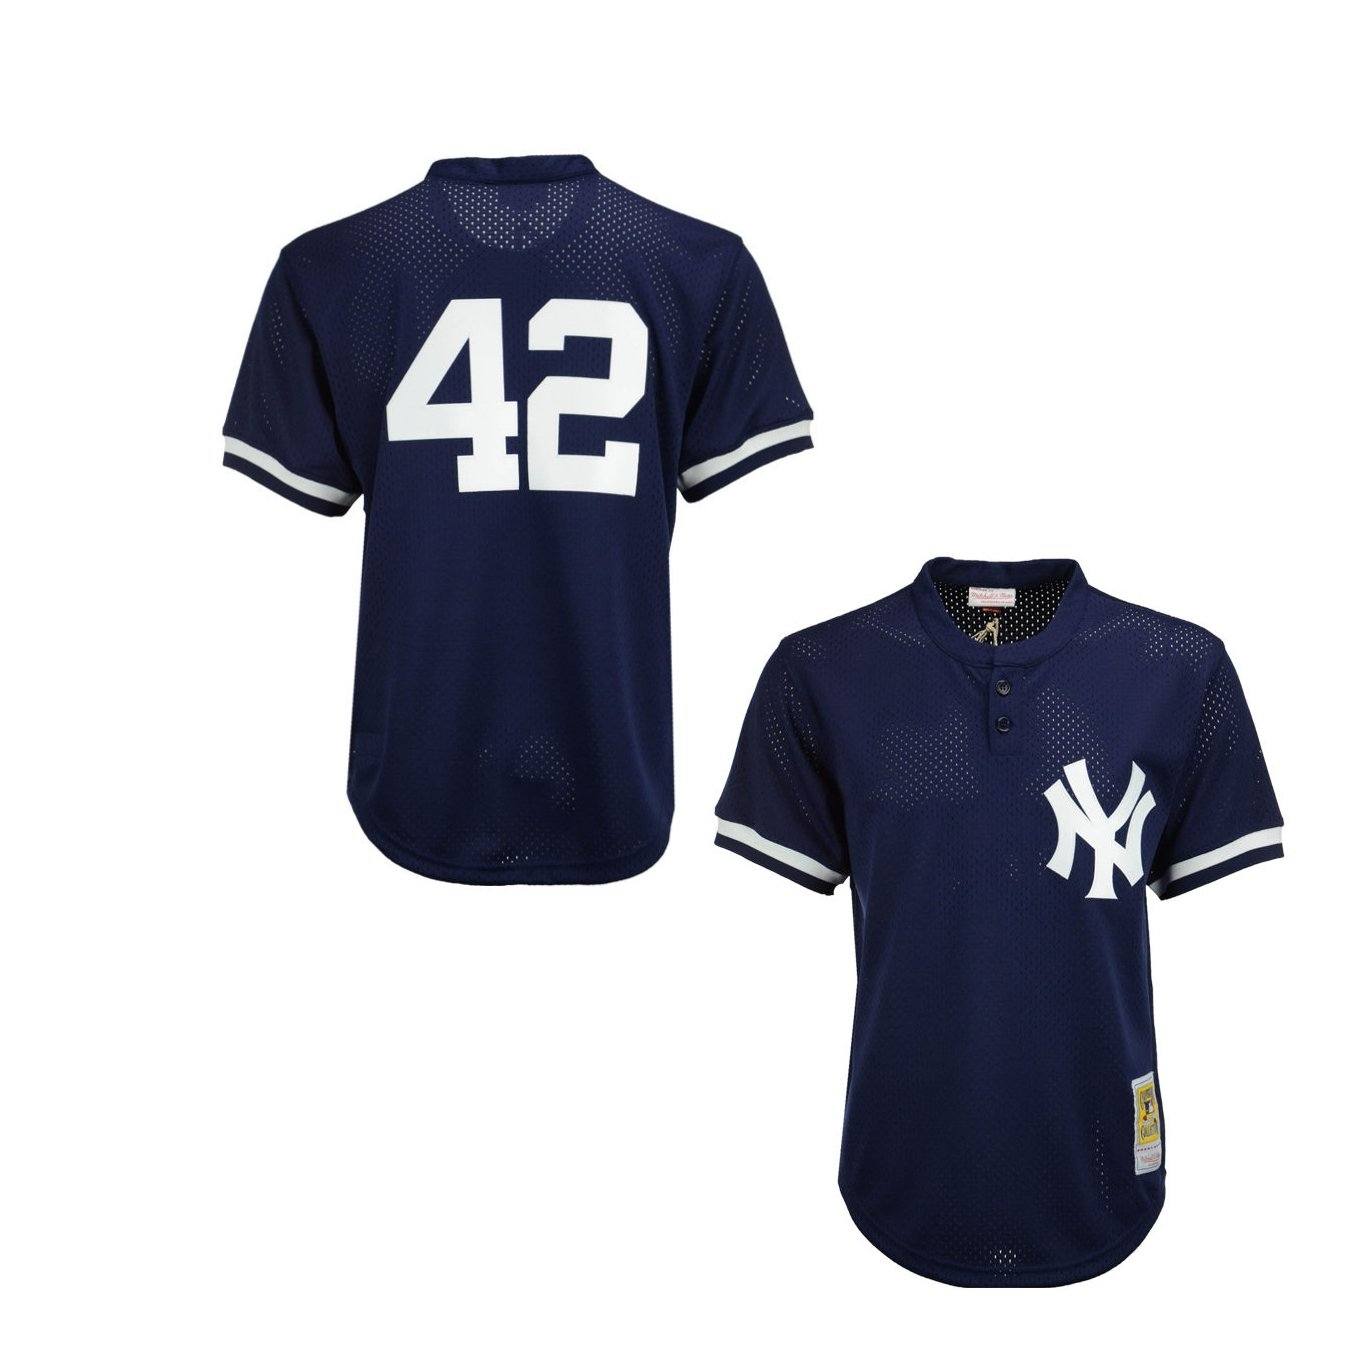 new arrival 256f8 4da39 Mitchell & Ness Mariano Rivera Navy New York Yankees Authentic Mesh Batting  Practice Jersey